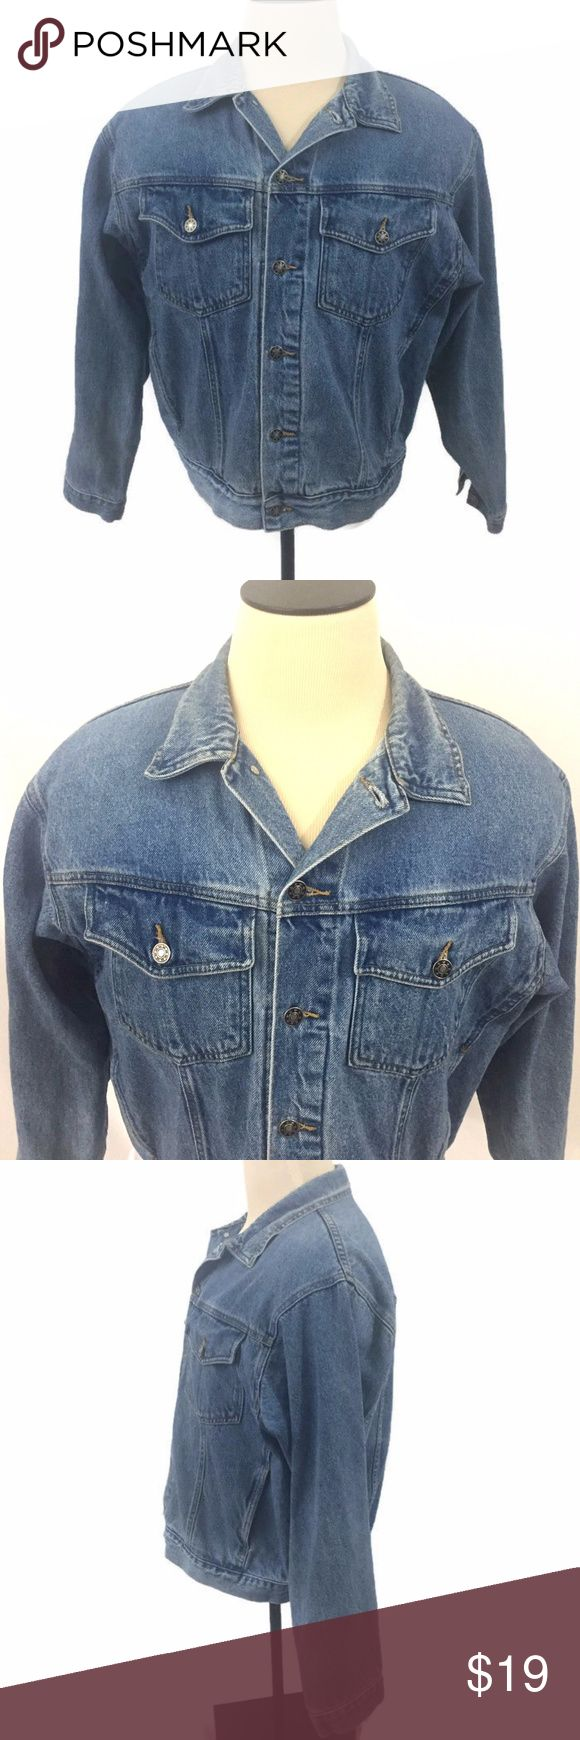 Mens Jean Jacket Vintage Unlined Vintage Saugatuck Dry Goods Company Ltd Blue Jean Jacket Mens Size Large Metal Buttons  2 Front Button Close Chest Pockets Jacket is in very good condition.  There are no rips, tears or stains  Approximate Measurements:  Chest 48 Inches / 121.92 cm Shoulder to Hem 25 Inches / 63.5 cm Shoulder to Shoulder 21 Inches / 53.35 cm Waist Circumference 42 Inches / 106.68 cm Saugatuck Jackets & Coats